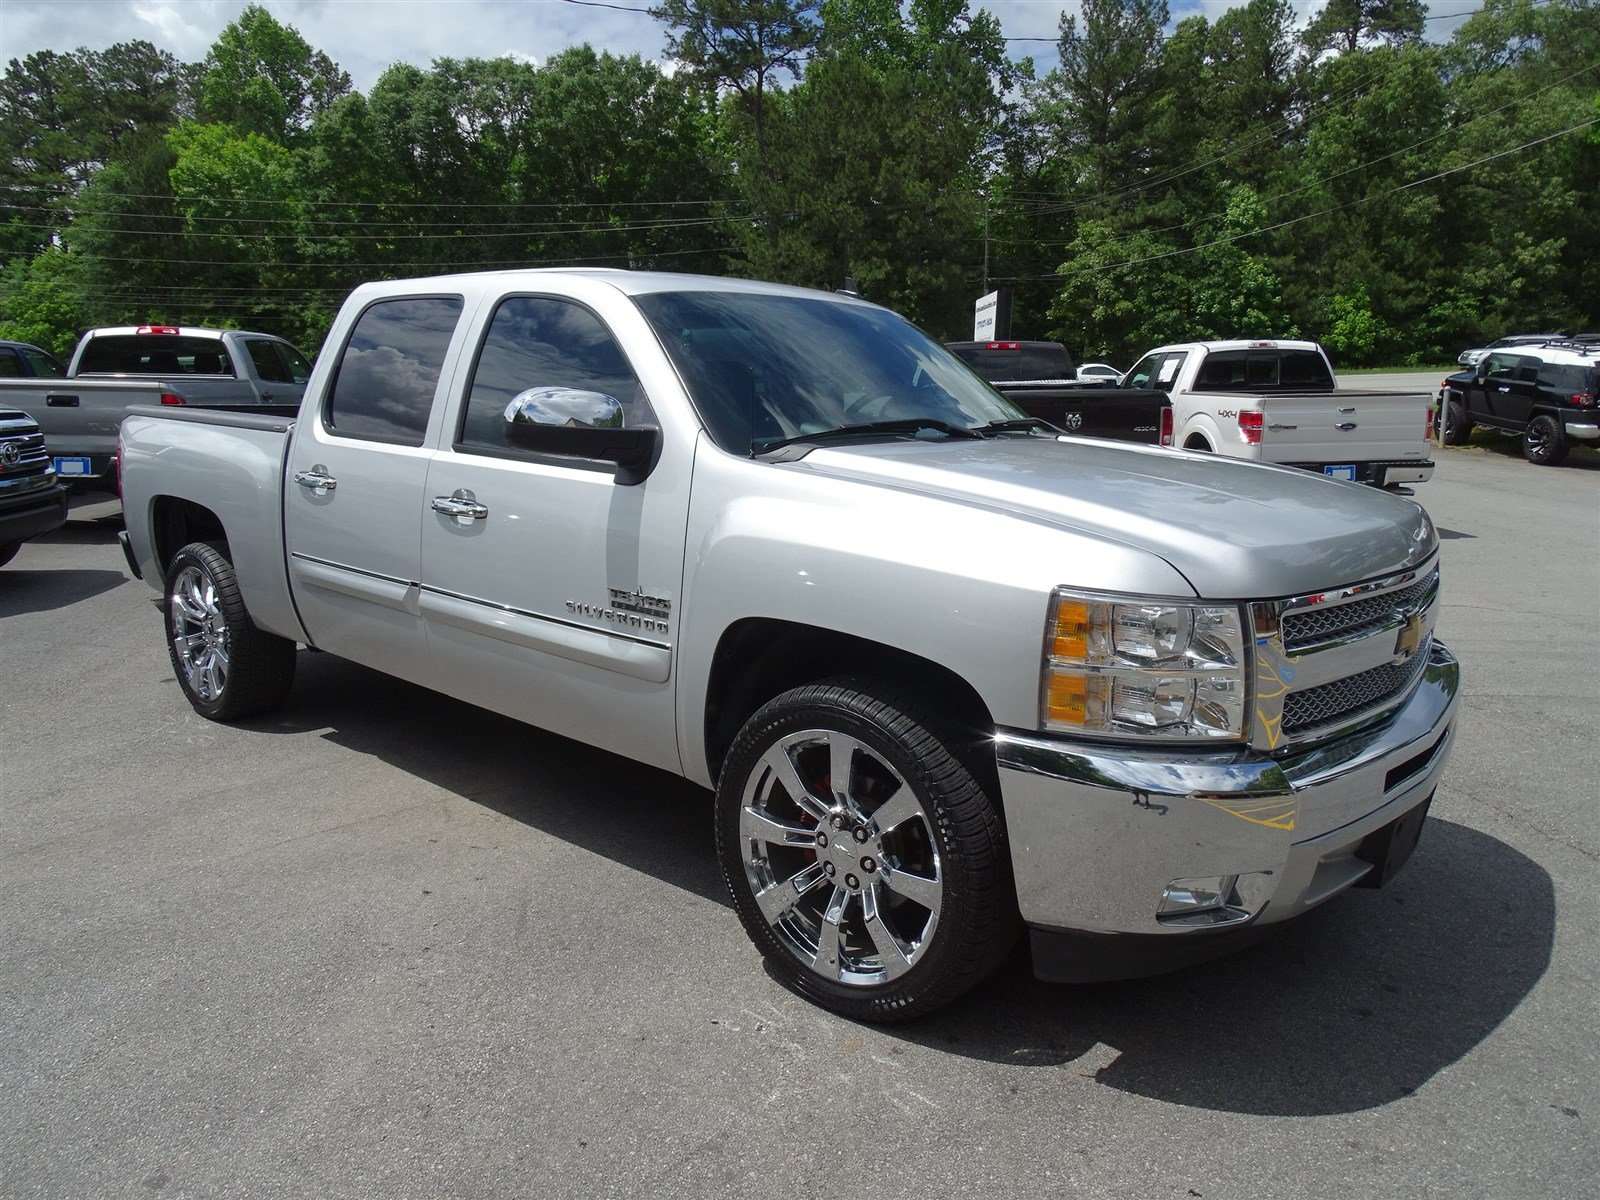 2013 Chevrolet Silverado 1500 LT  Leather-Wrapped Steering Wheel Chrome Grille Surround Engine